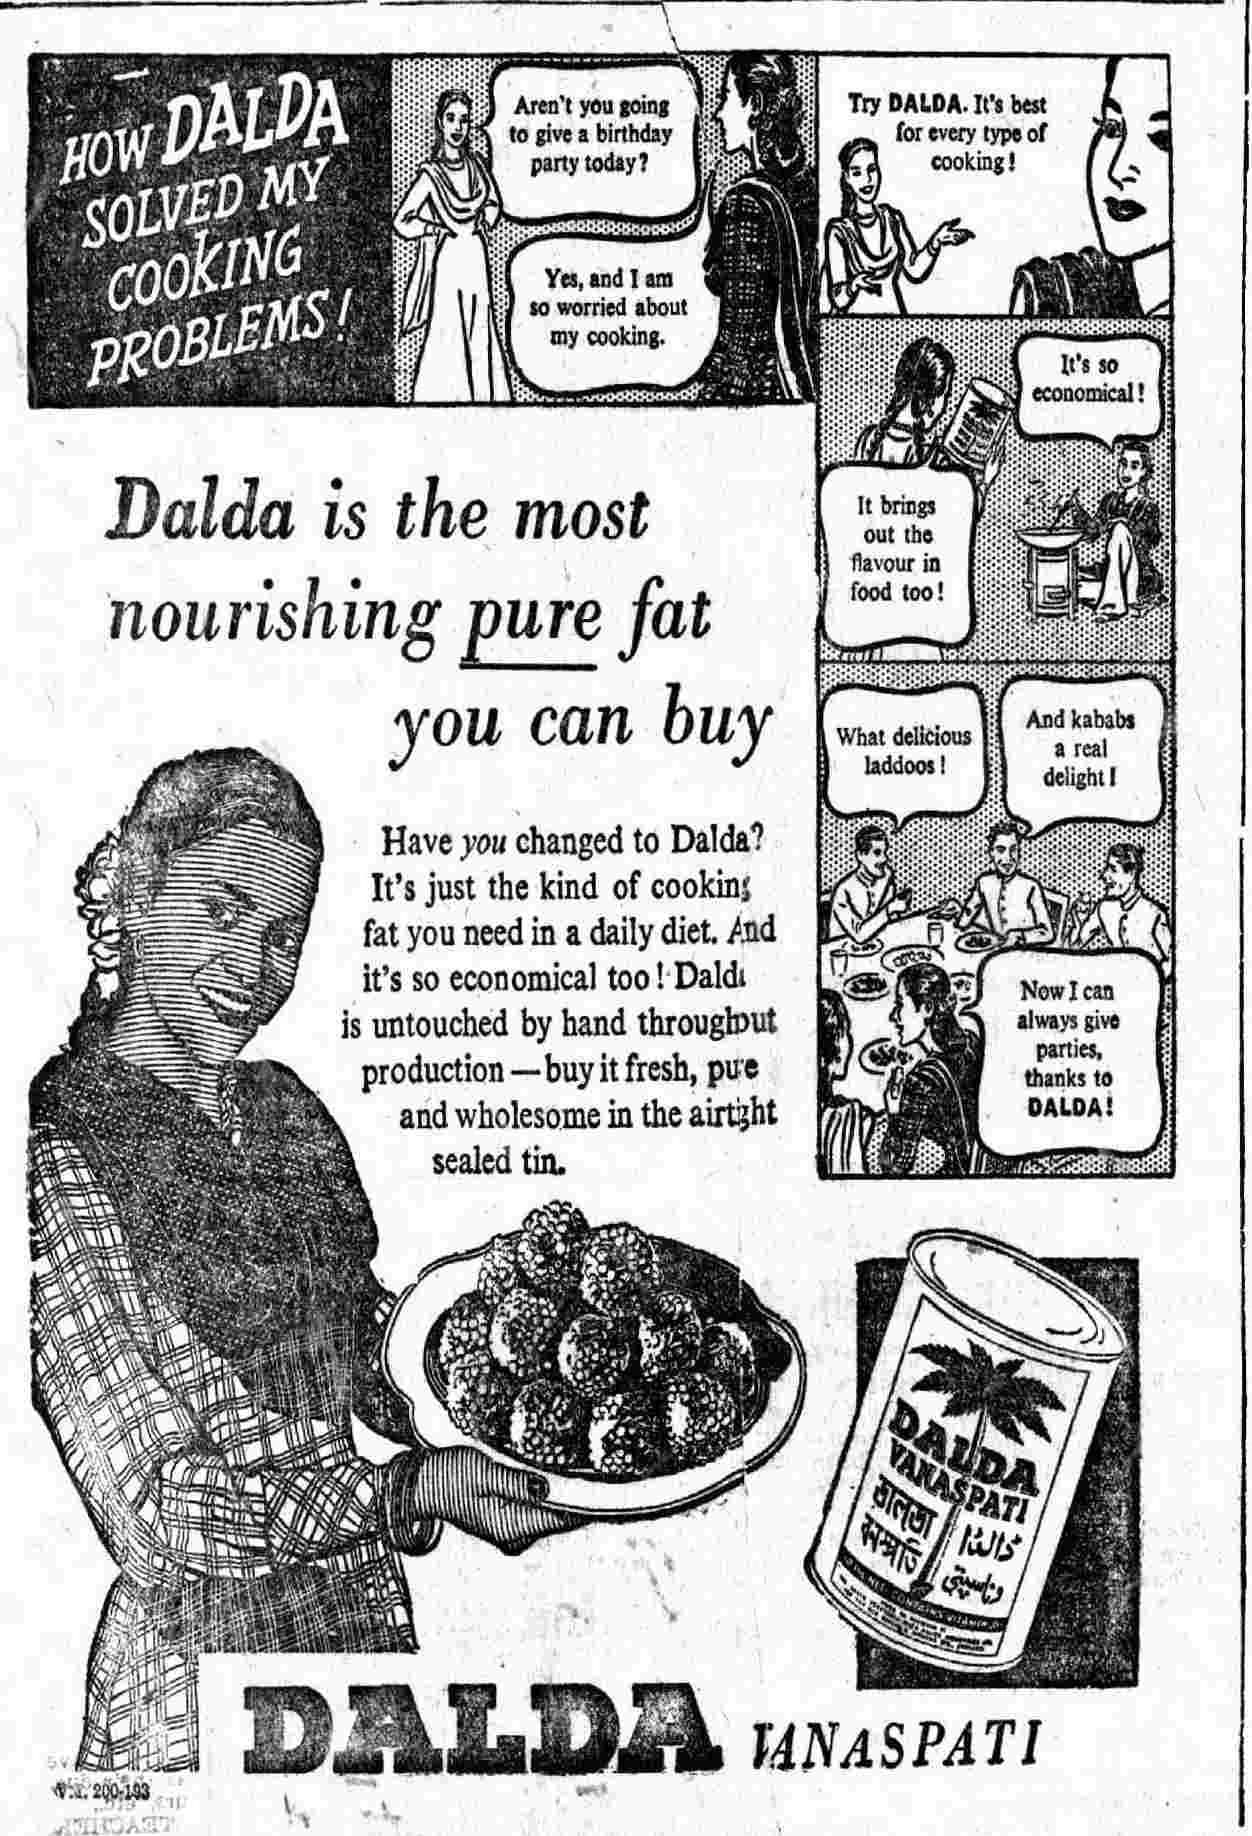 Dalda's ad from 1954